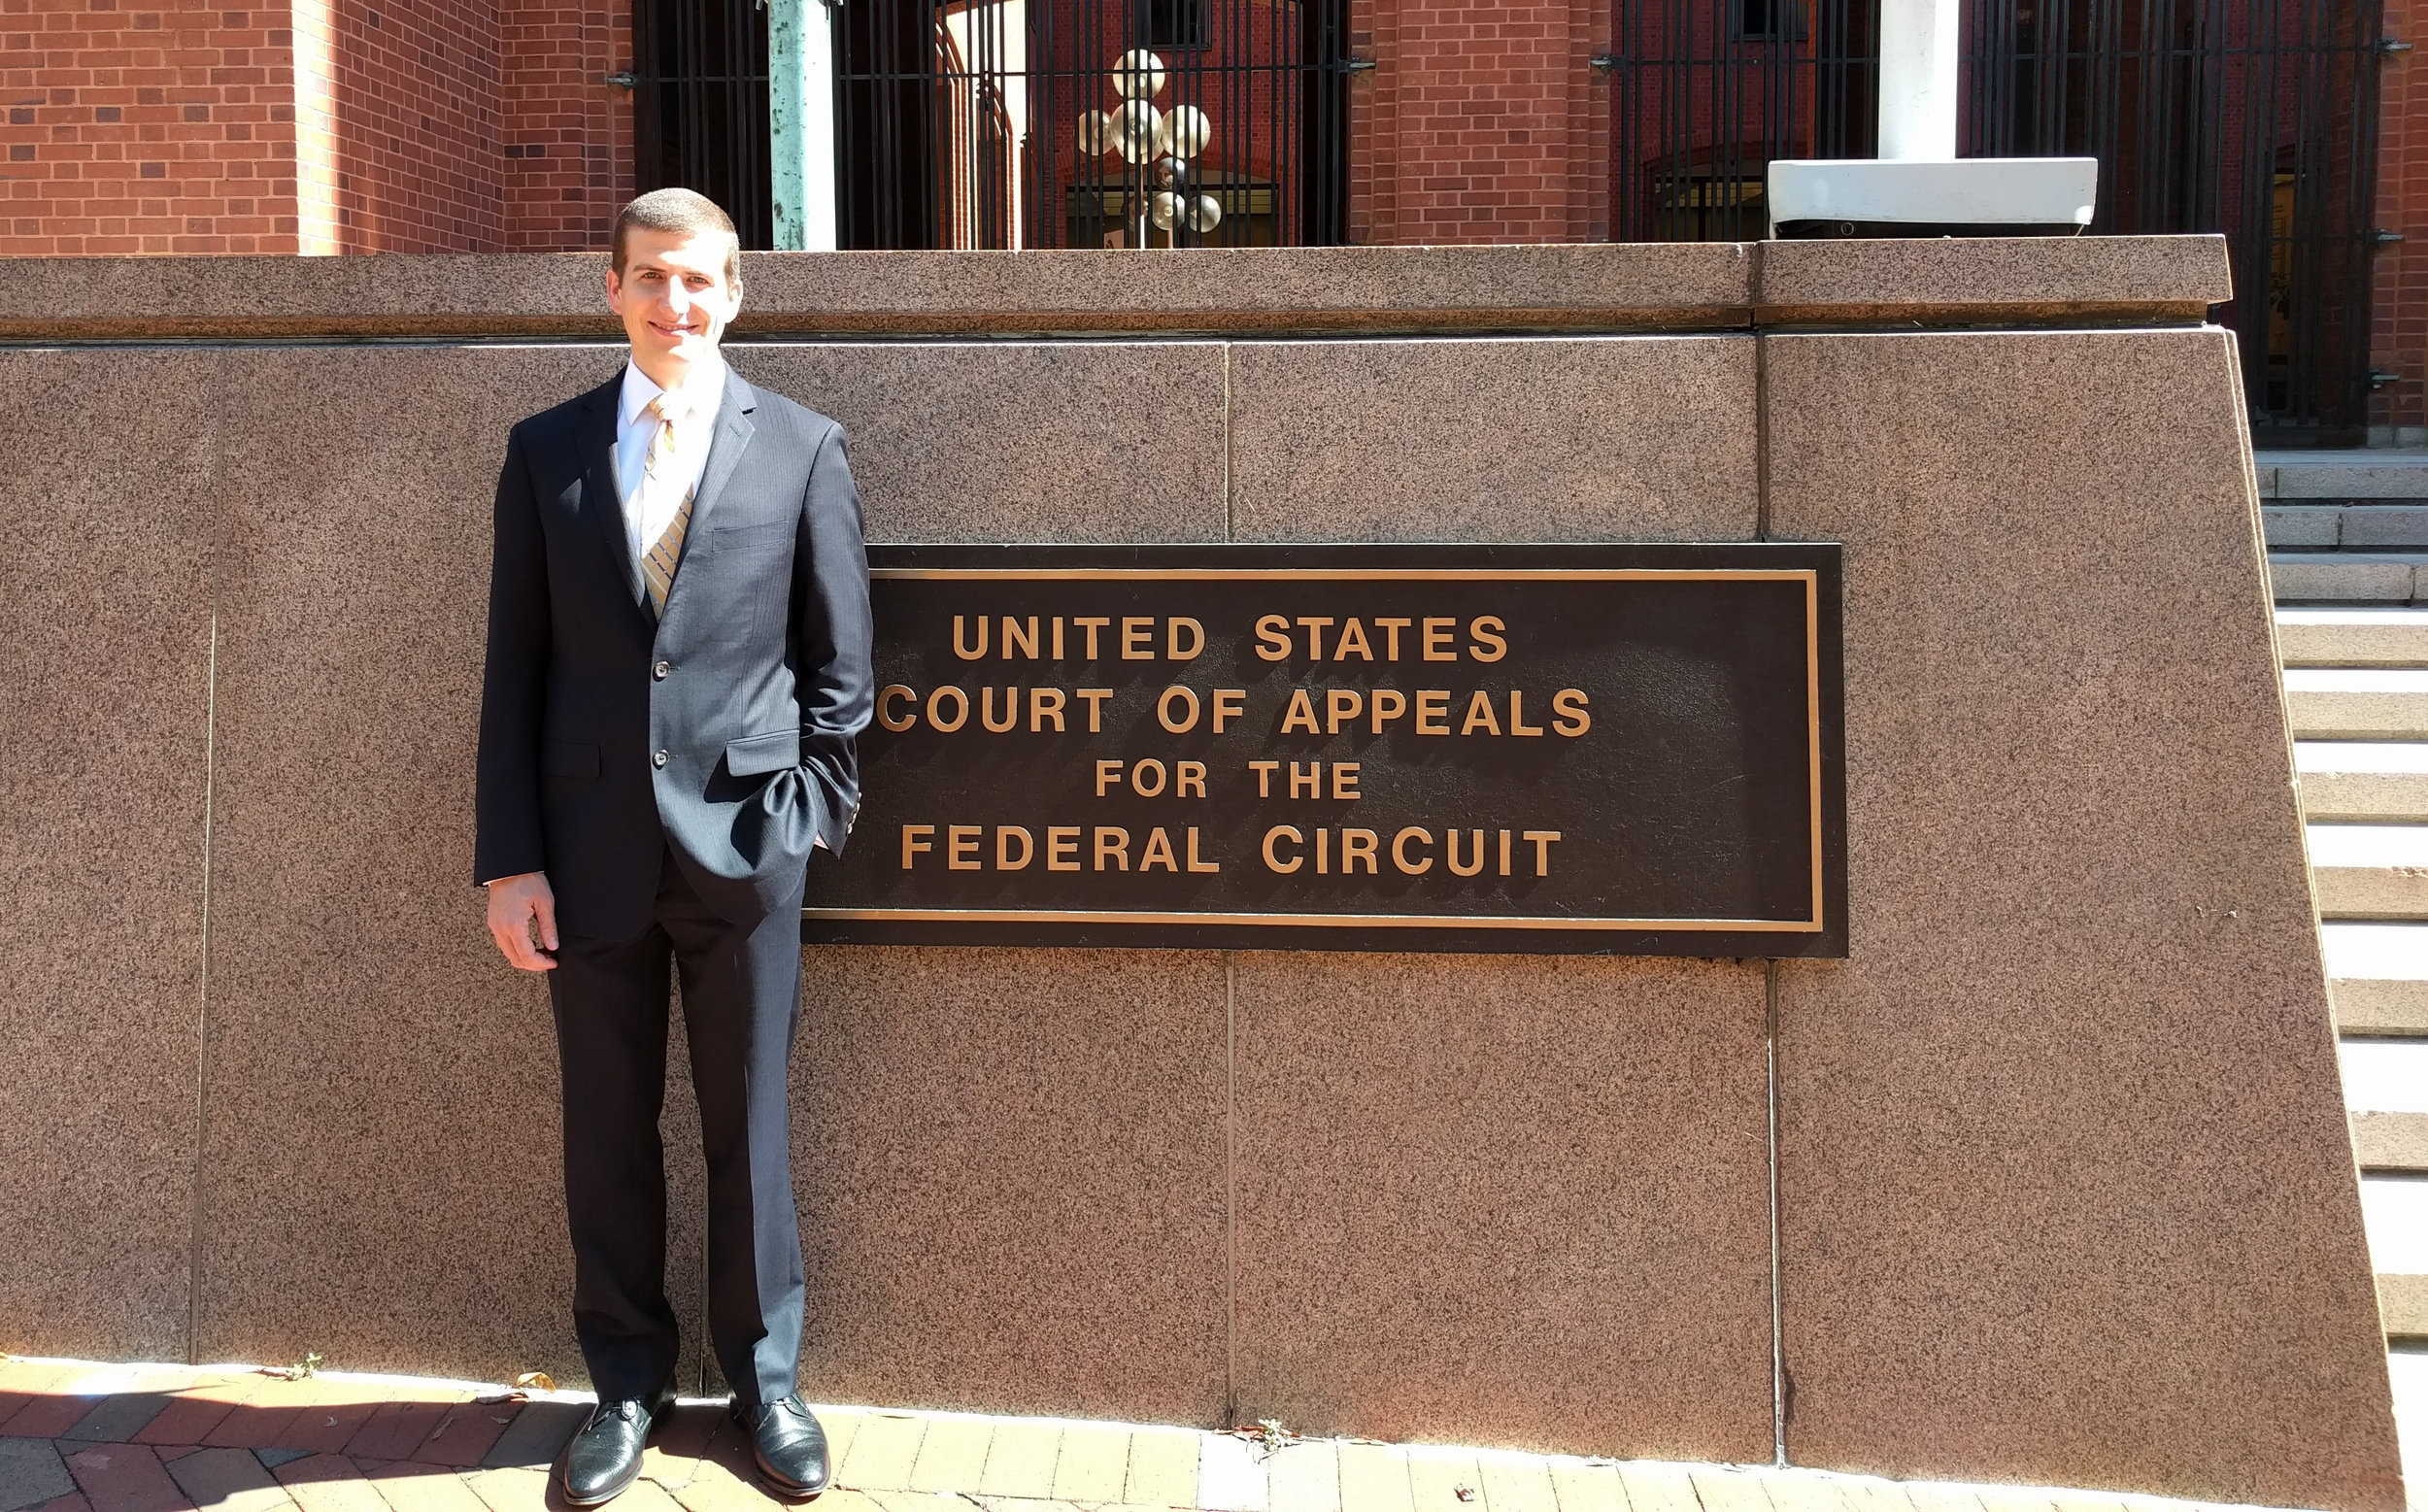 Mr. Kennedy presented oral argument in the Federal Circuit's first ROTC scholarship case.